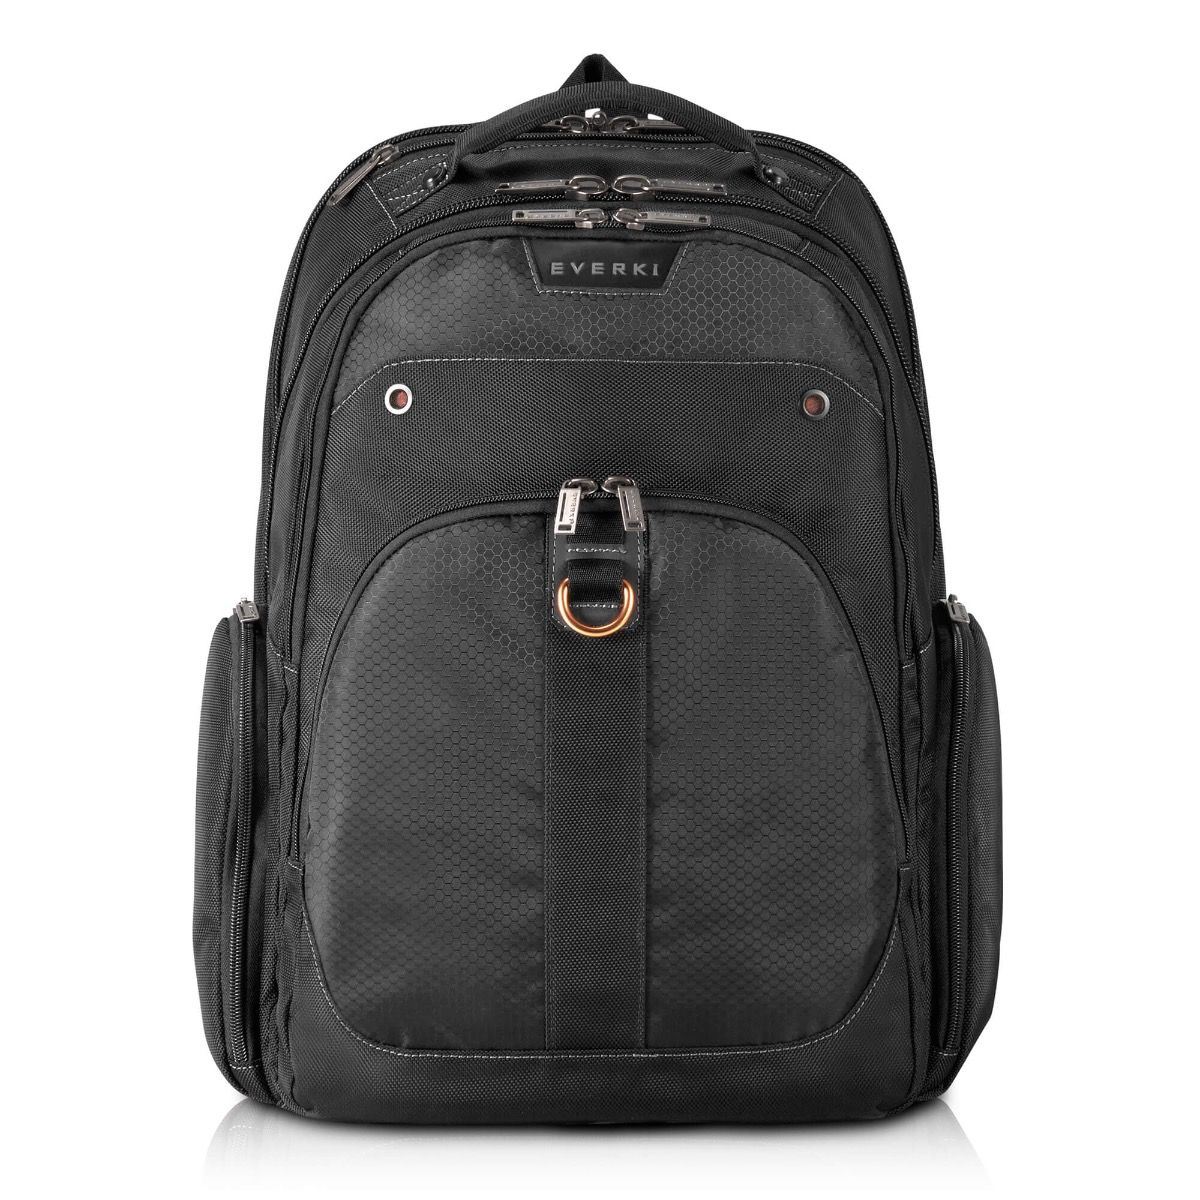 EVERKI Atlas Travel Friendly 17 Inch Laptop Backpack